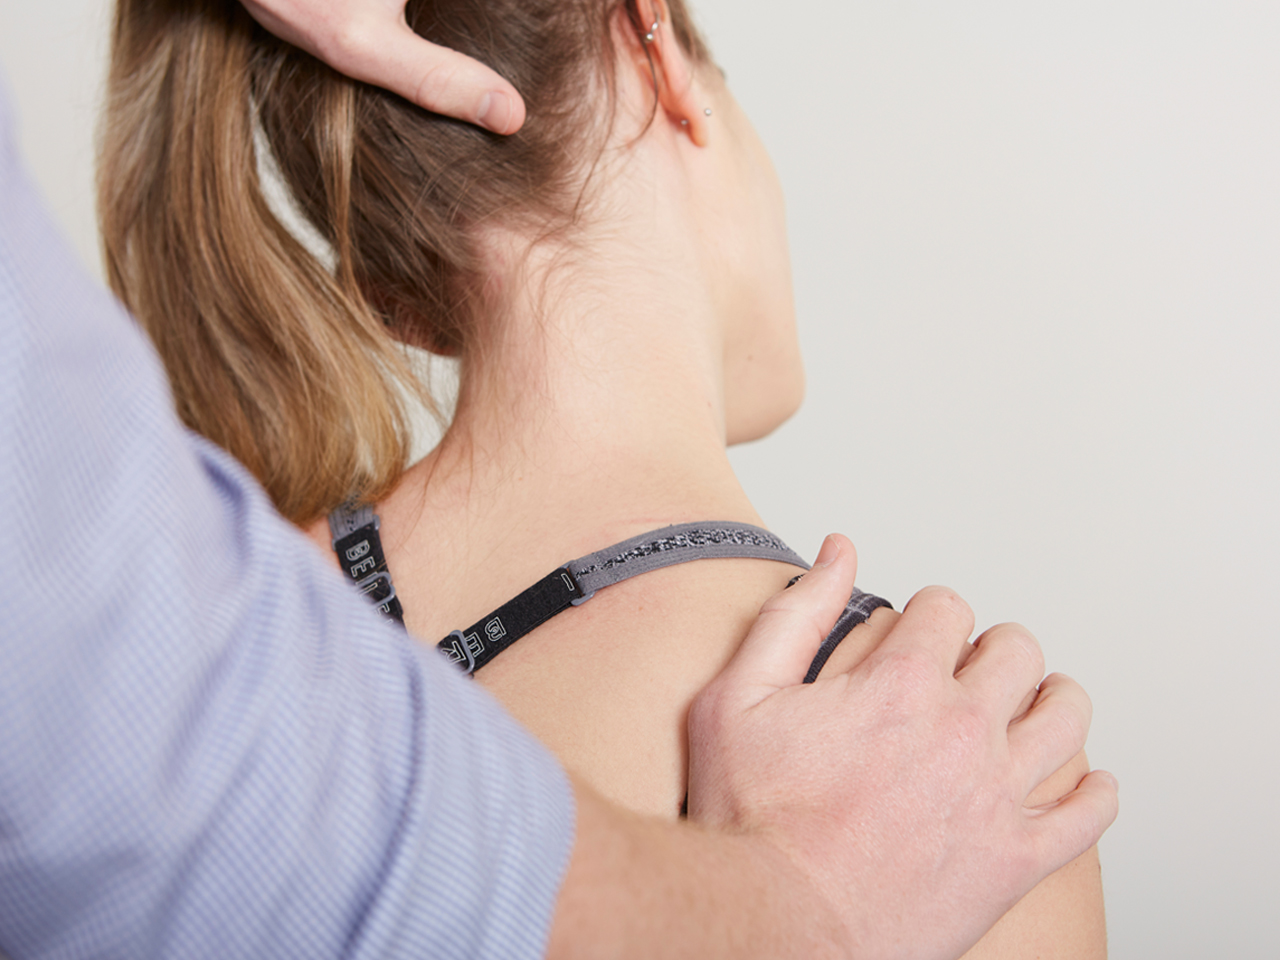 Normal neck function is essential for protection of the spinal nerves and effective use of the senses.Neck pain and loss of function are often caused by altered muscle control and stiffness in the neck joints. -